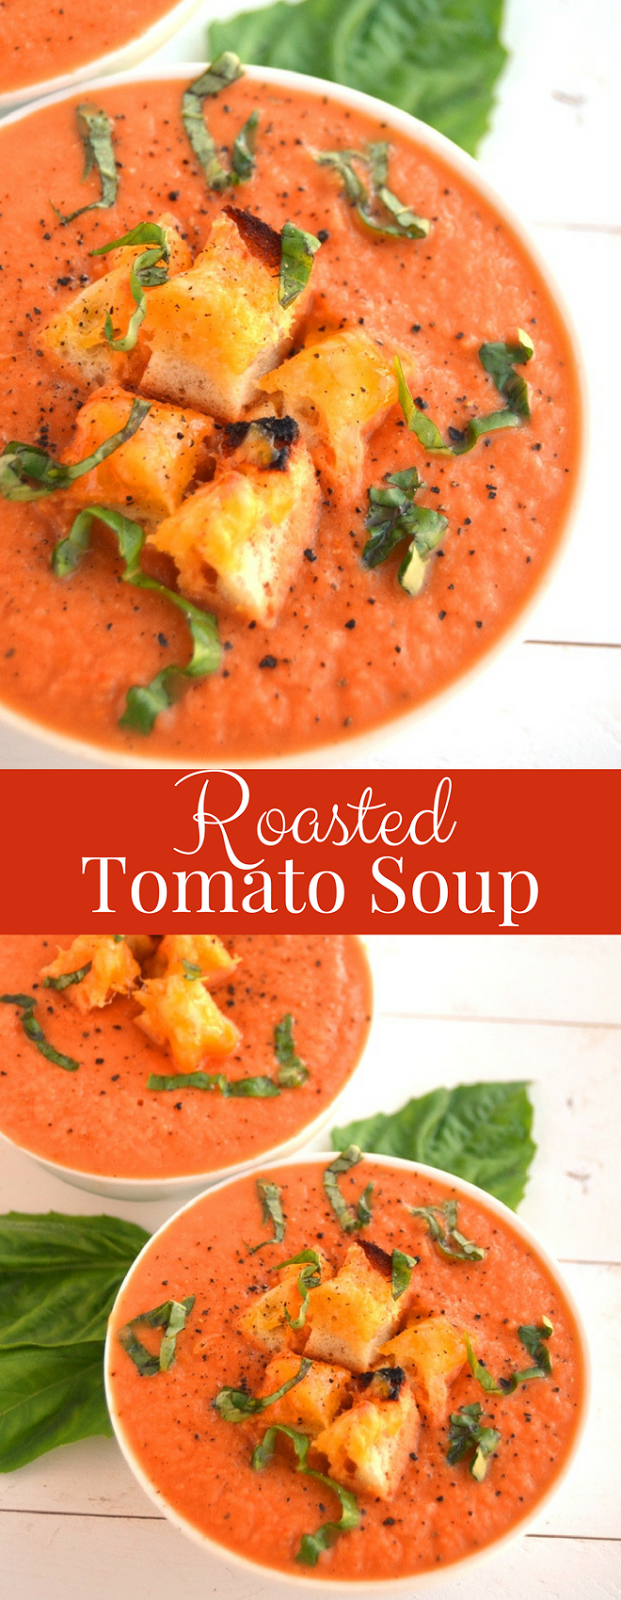 Roasted Tomato Soup is just 5 ingredients, creamy despite having no dairy and is loaded with flavorful roasted tomatoes, onions, garlic, basil and grilled cheese croutons! www.nutritionistreviews.com